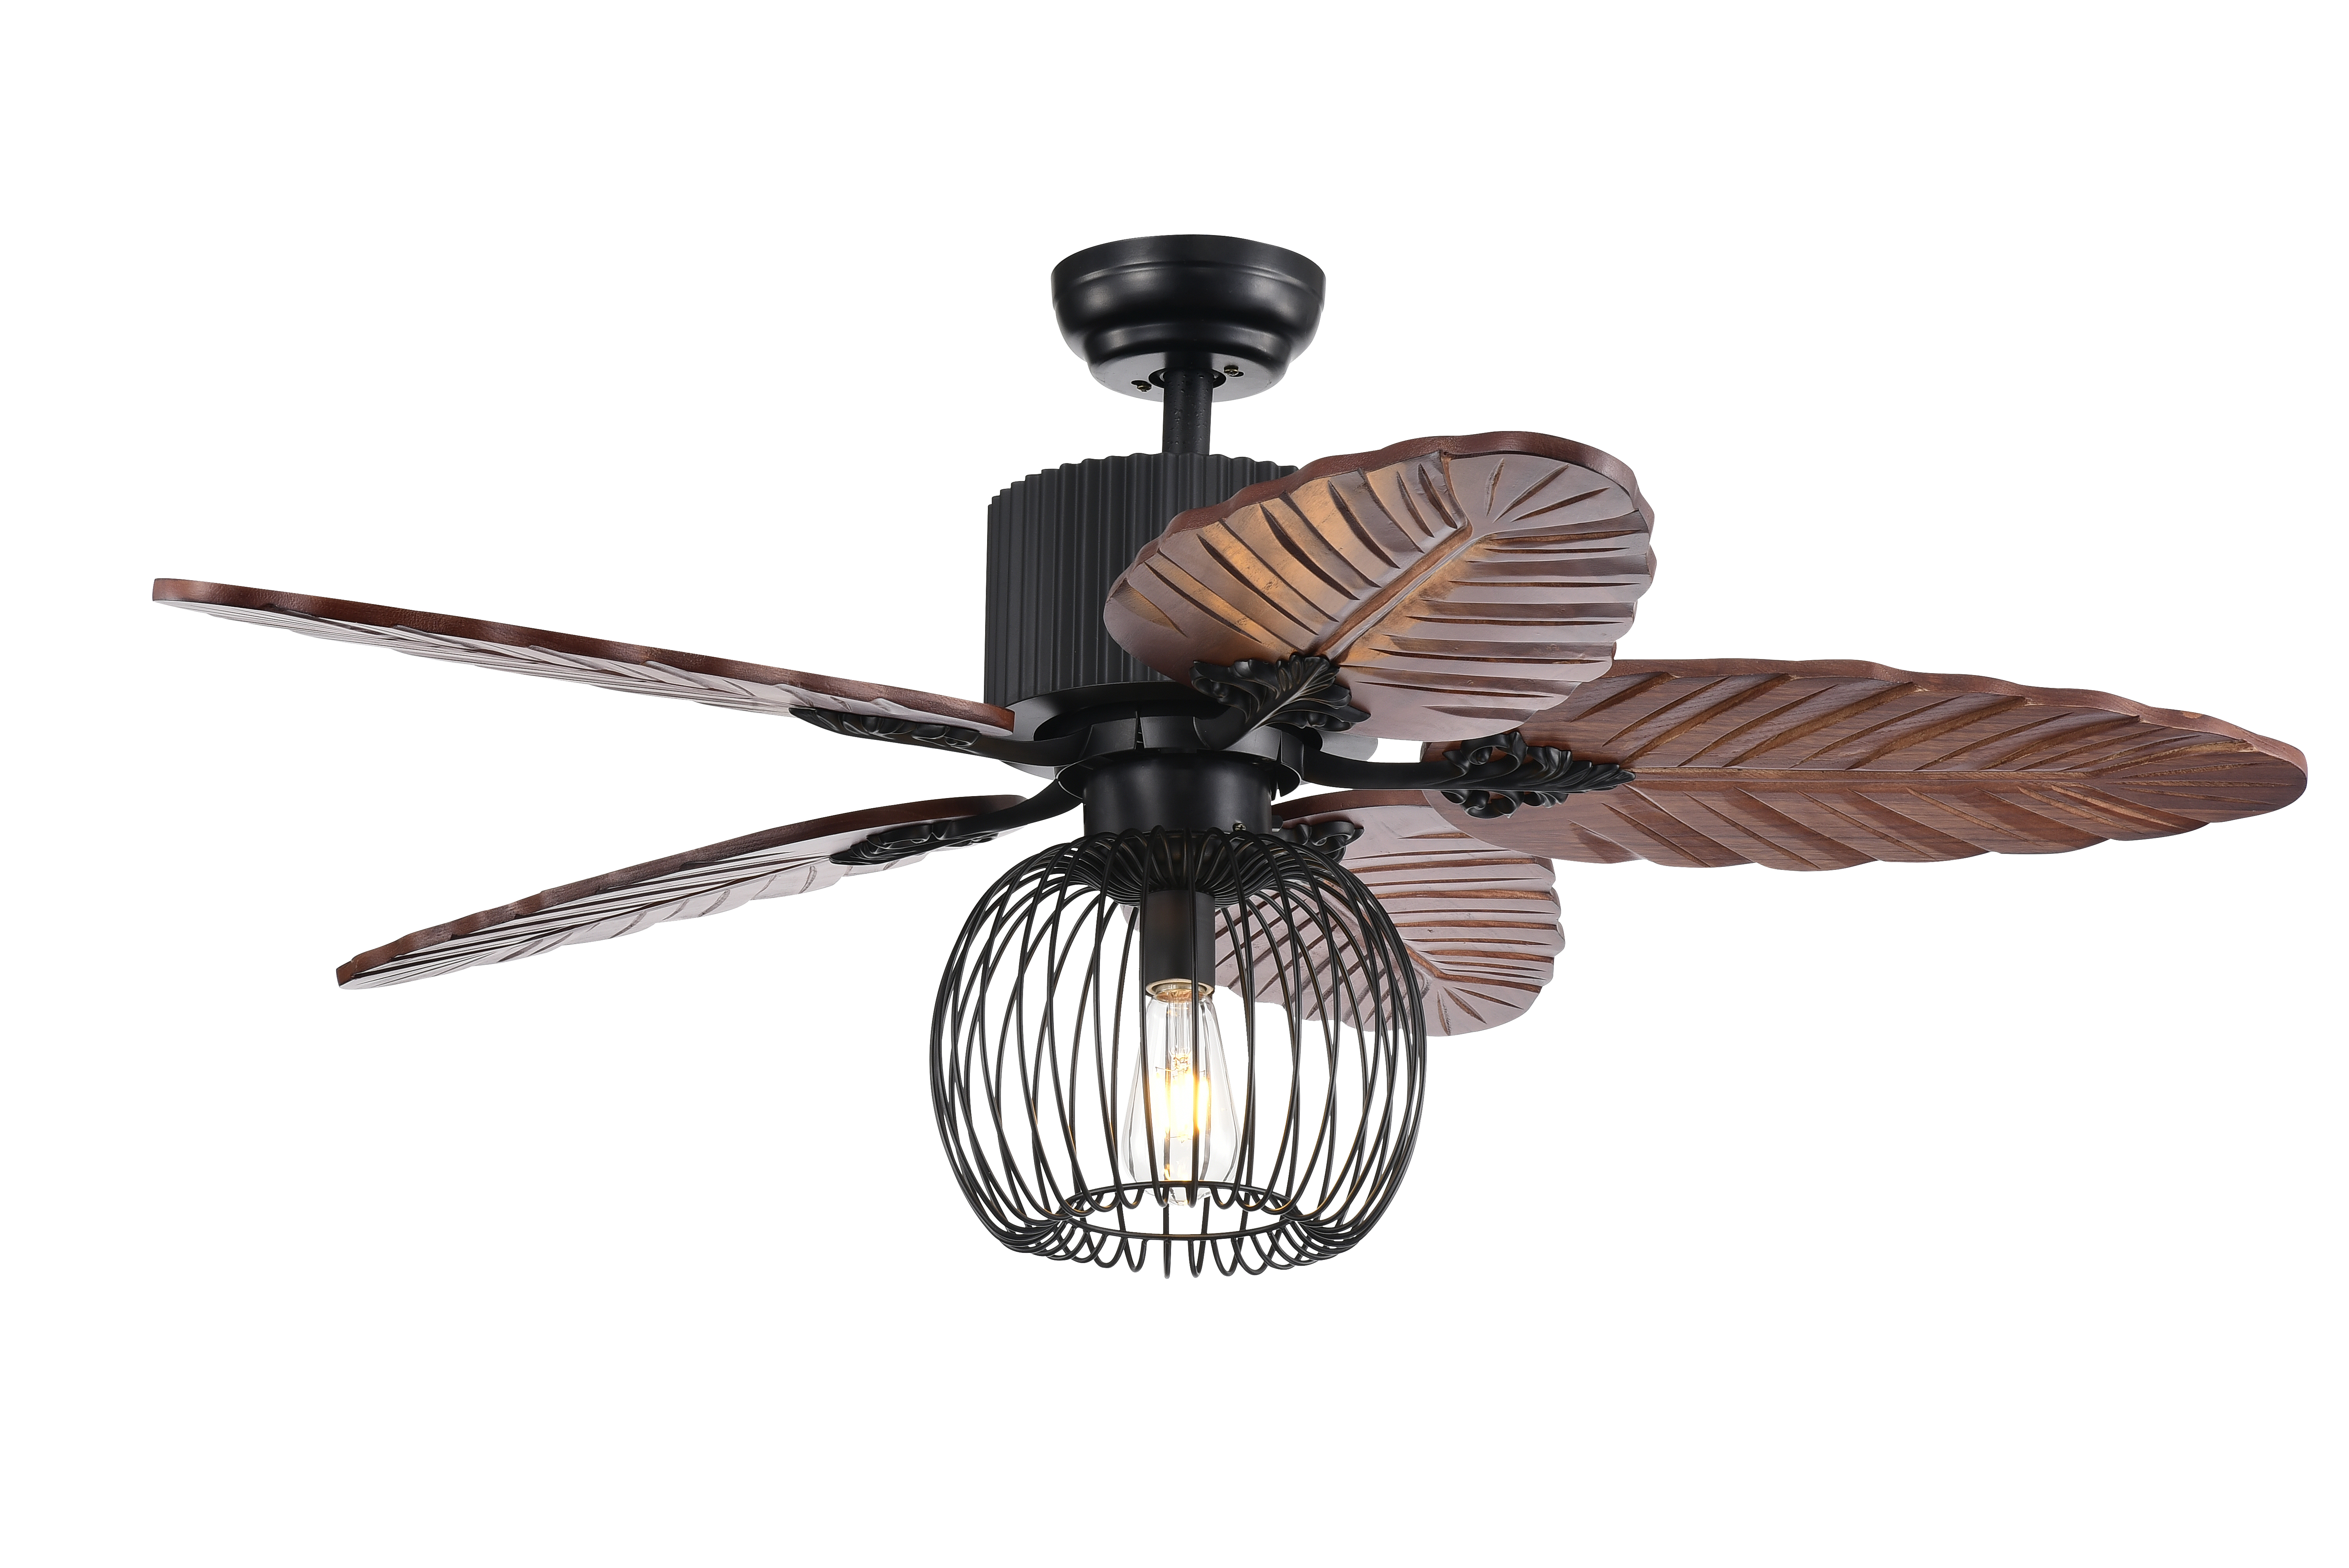 Aguano 48-inch Lighted Ceiling Fan & Broad Leaf Blades (remote controlled)